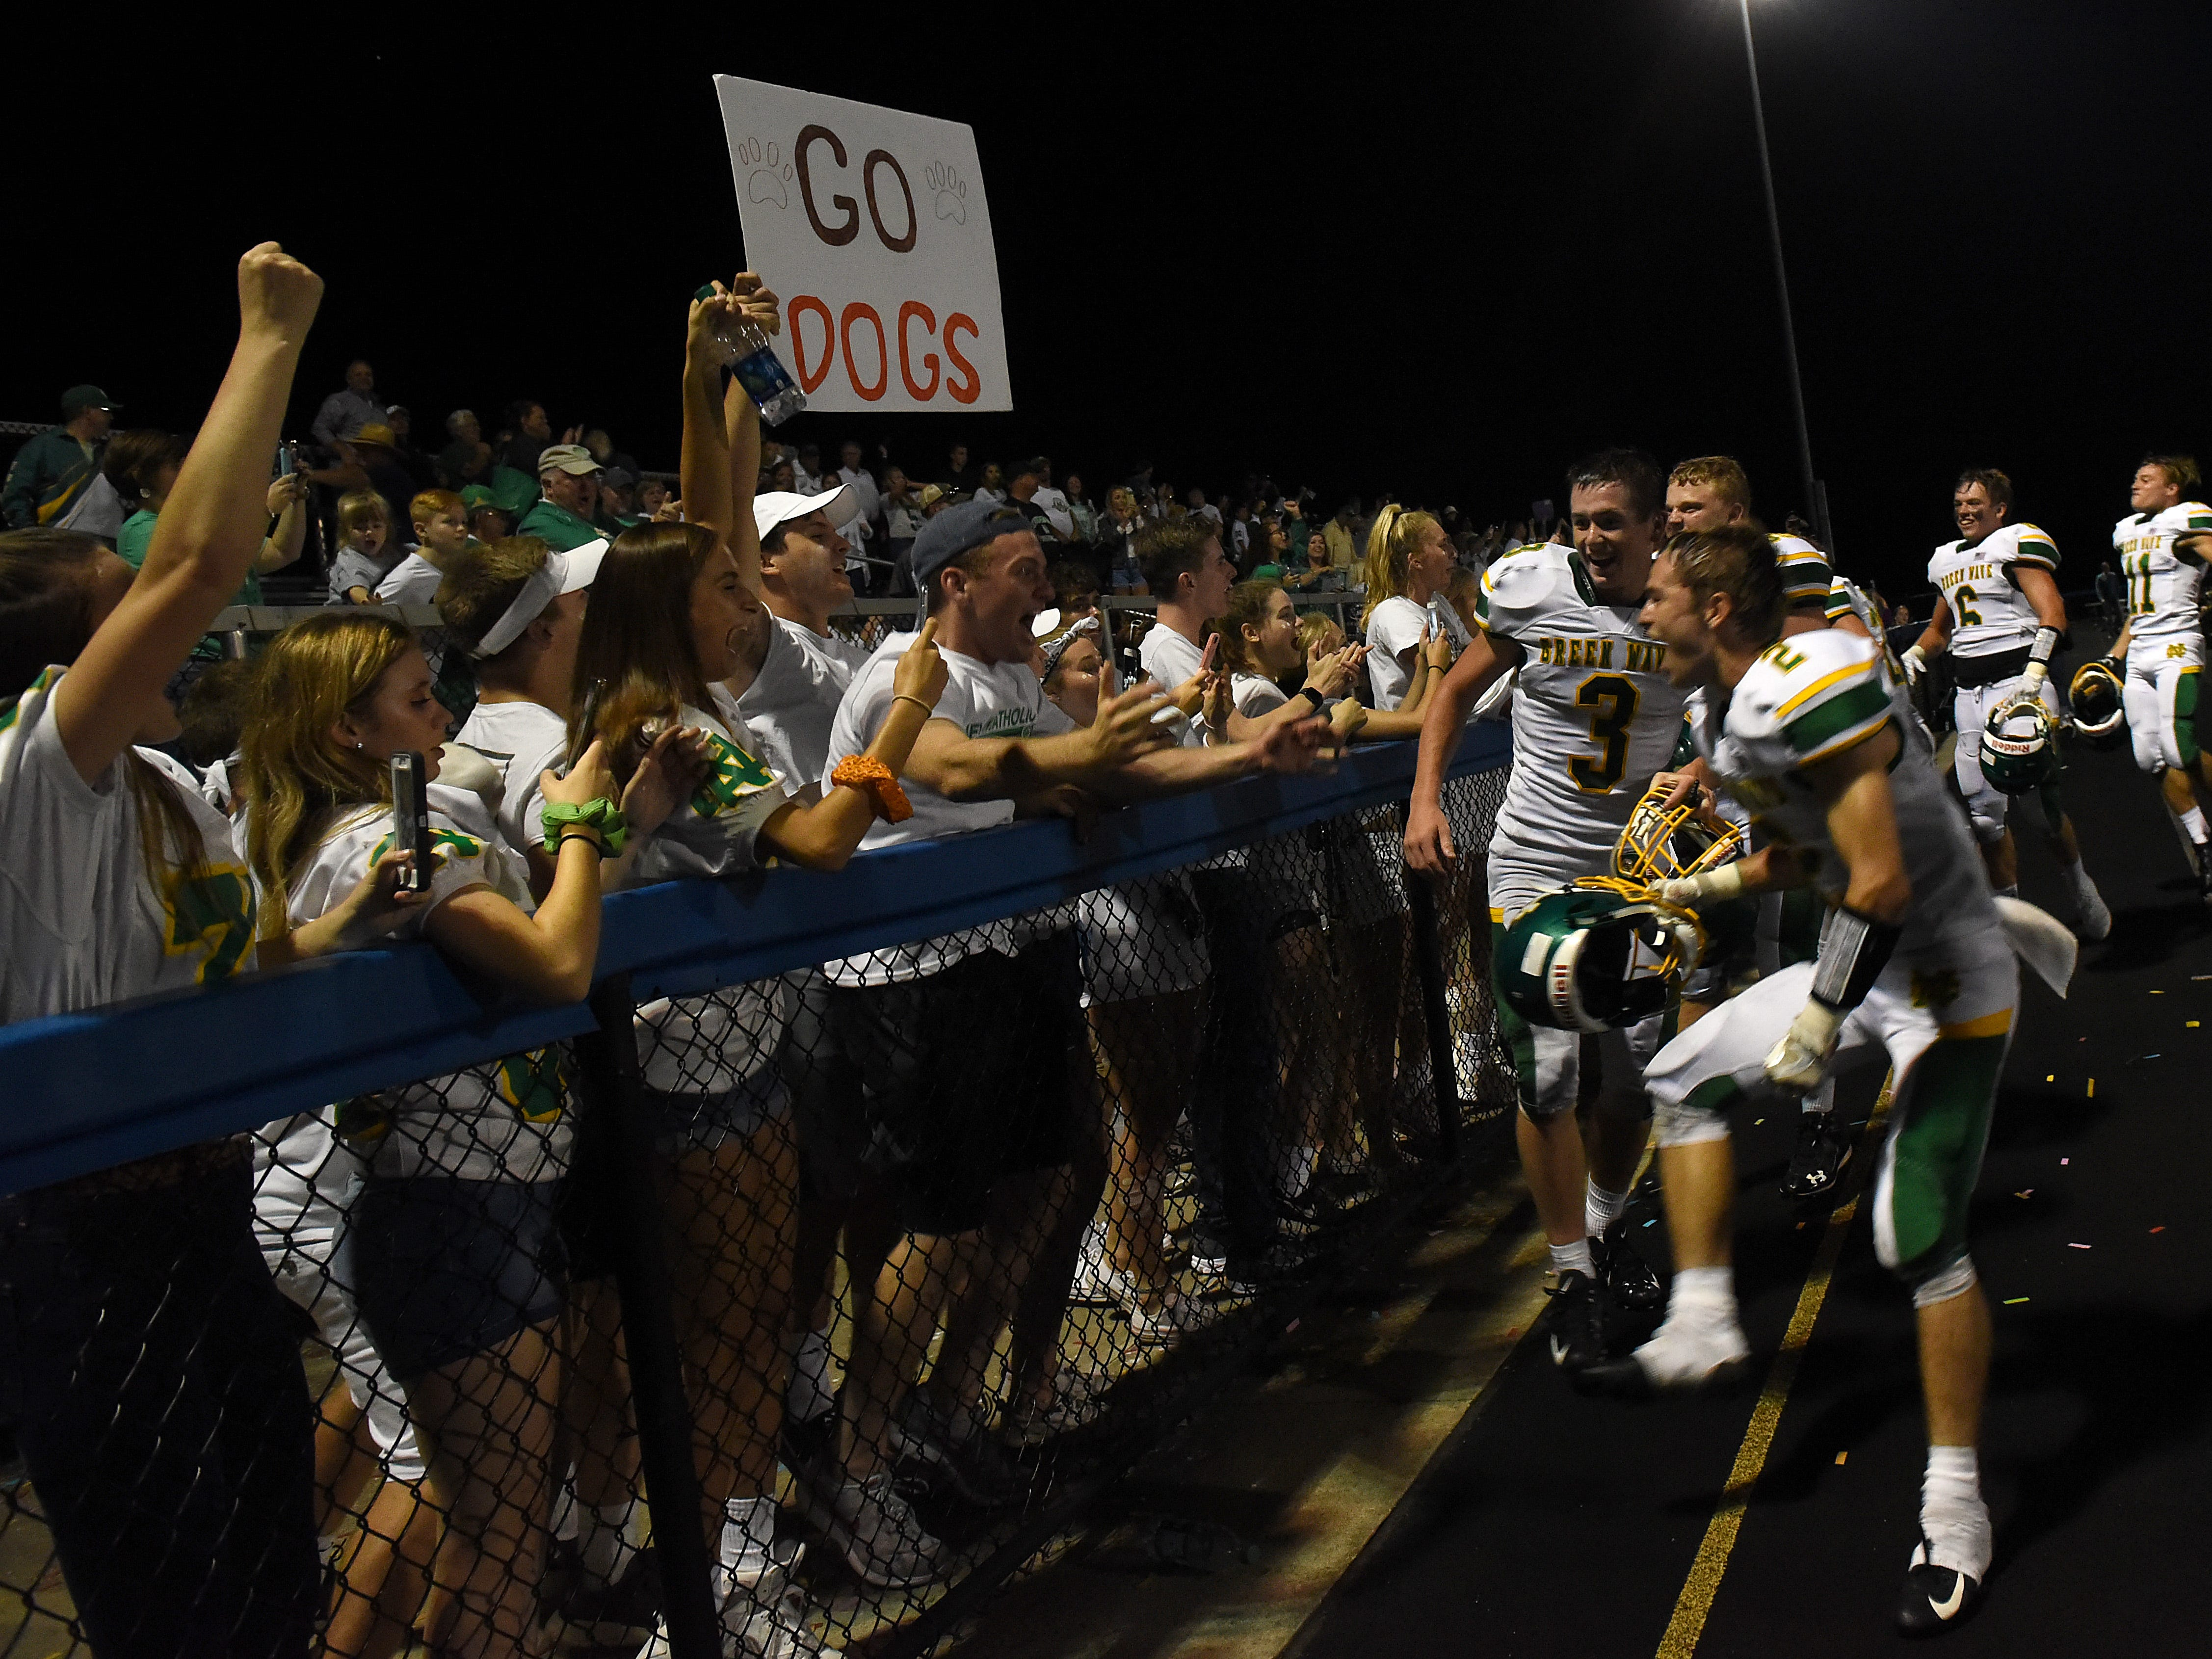 Newark Catholic football players celebrate their 17-13 win at Maysville with the students section on Thursday, Aug. 23, 2018.